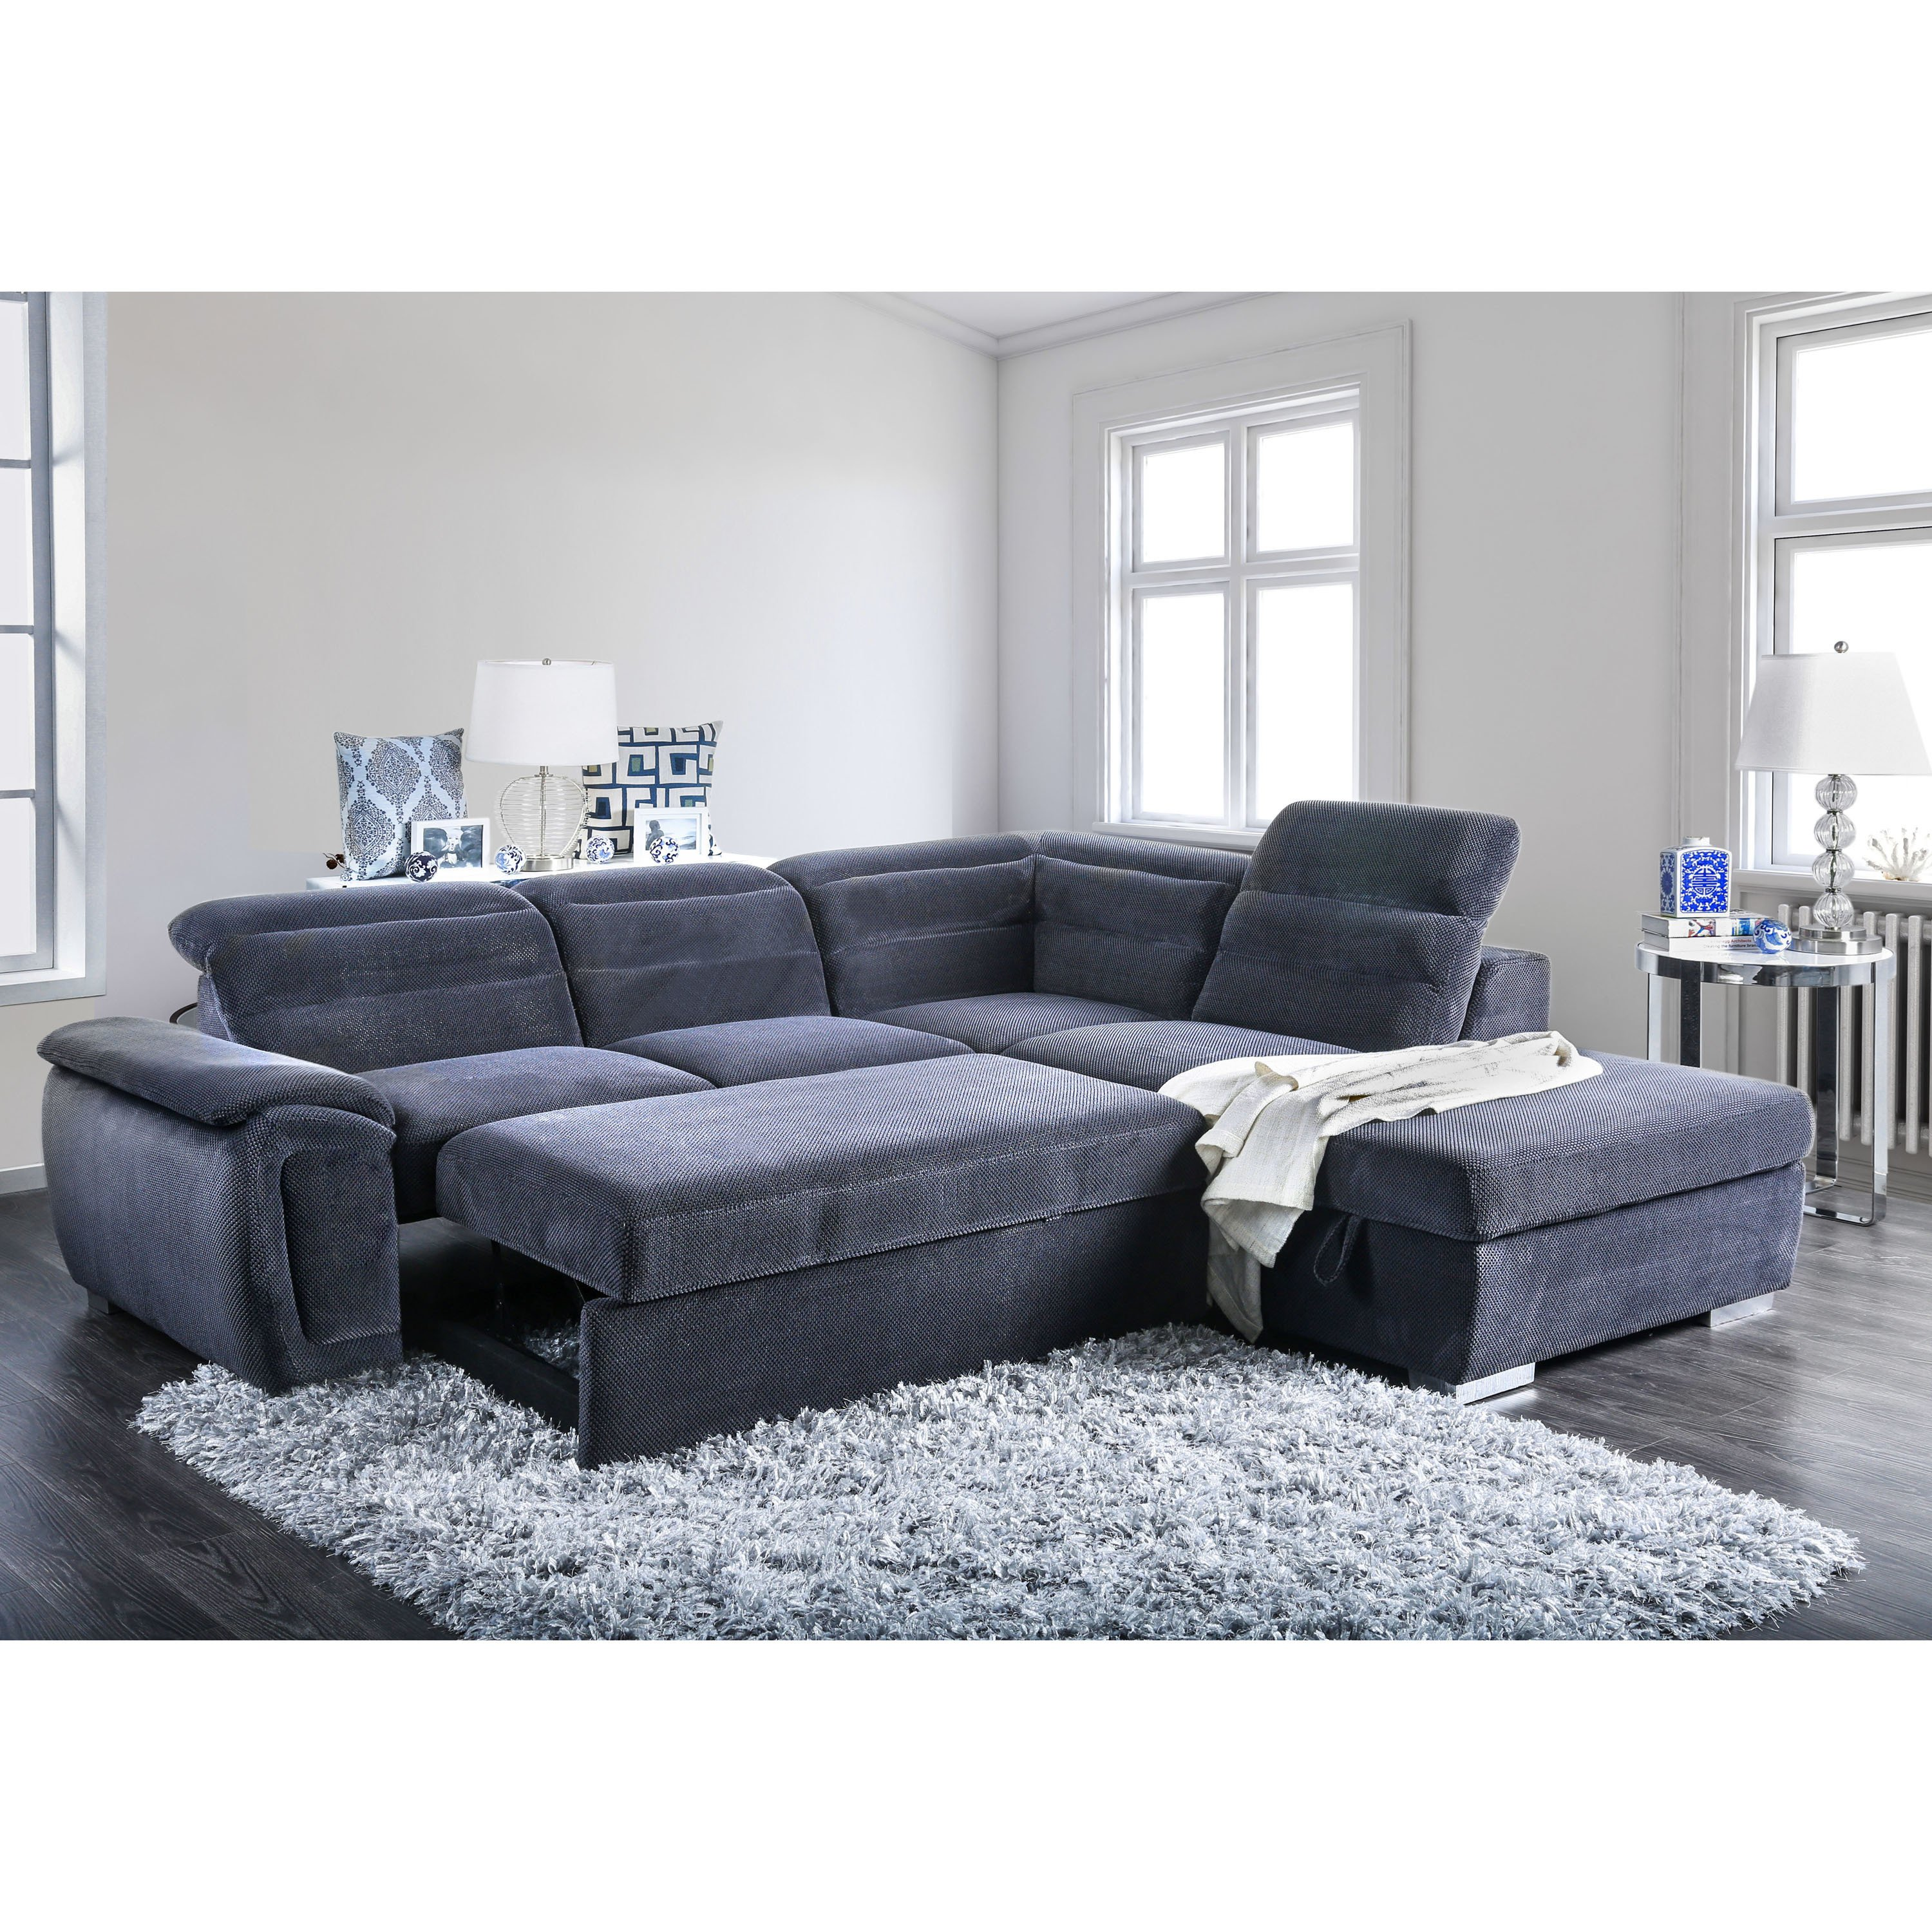 Shop Alina Contemporary 2-Piece Sectional by FOA - On Sale - Free Shipping  Today - Overstock - 19893679